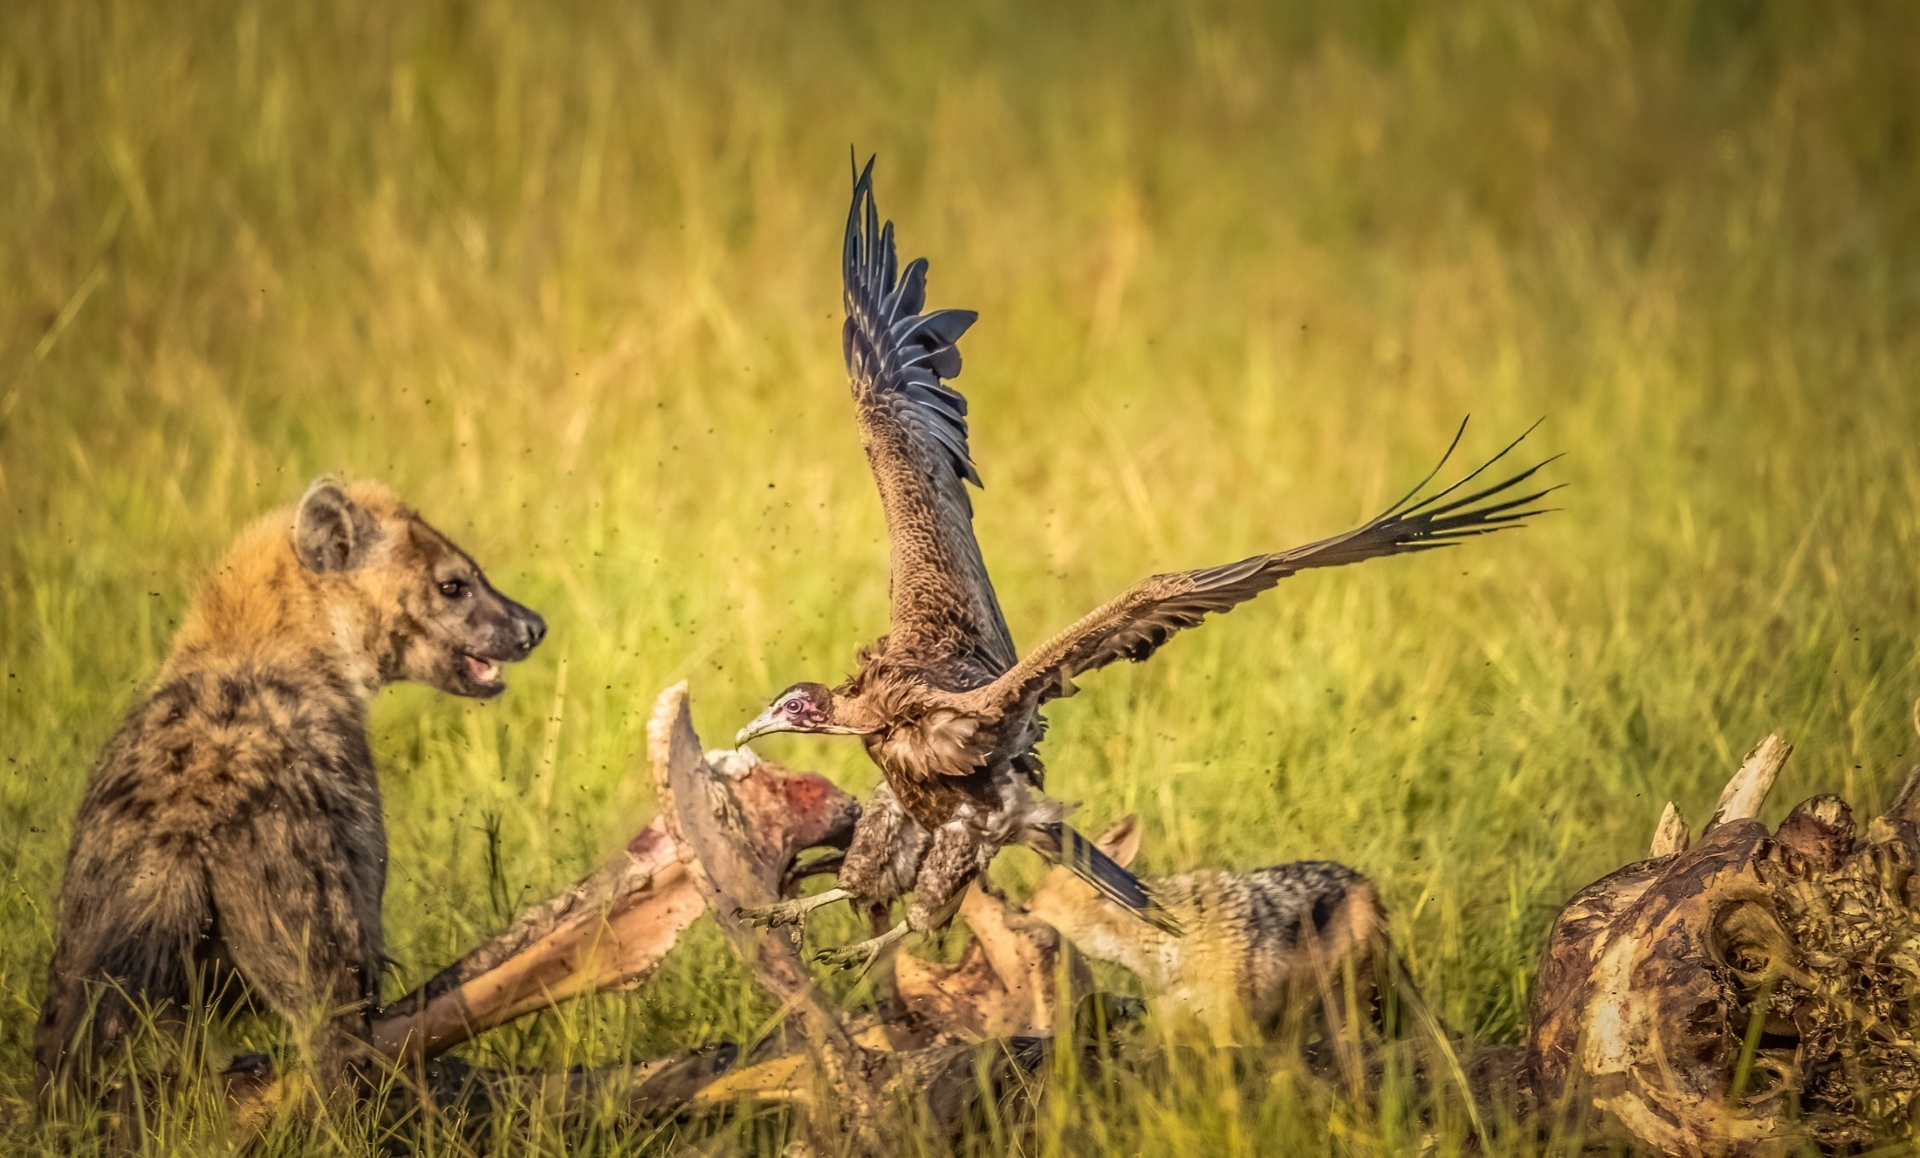 Scavengers-of-Masai-Mara-3_-The-spotted-Hyena-can-fiercely-attack-other-animals-and-birds-much-larger-than-itself-NM-Place-by-Rajani-Ramanathan-LV